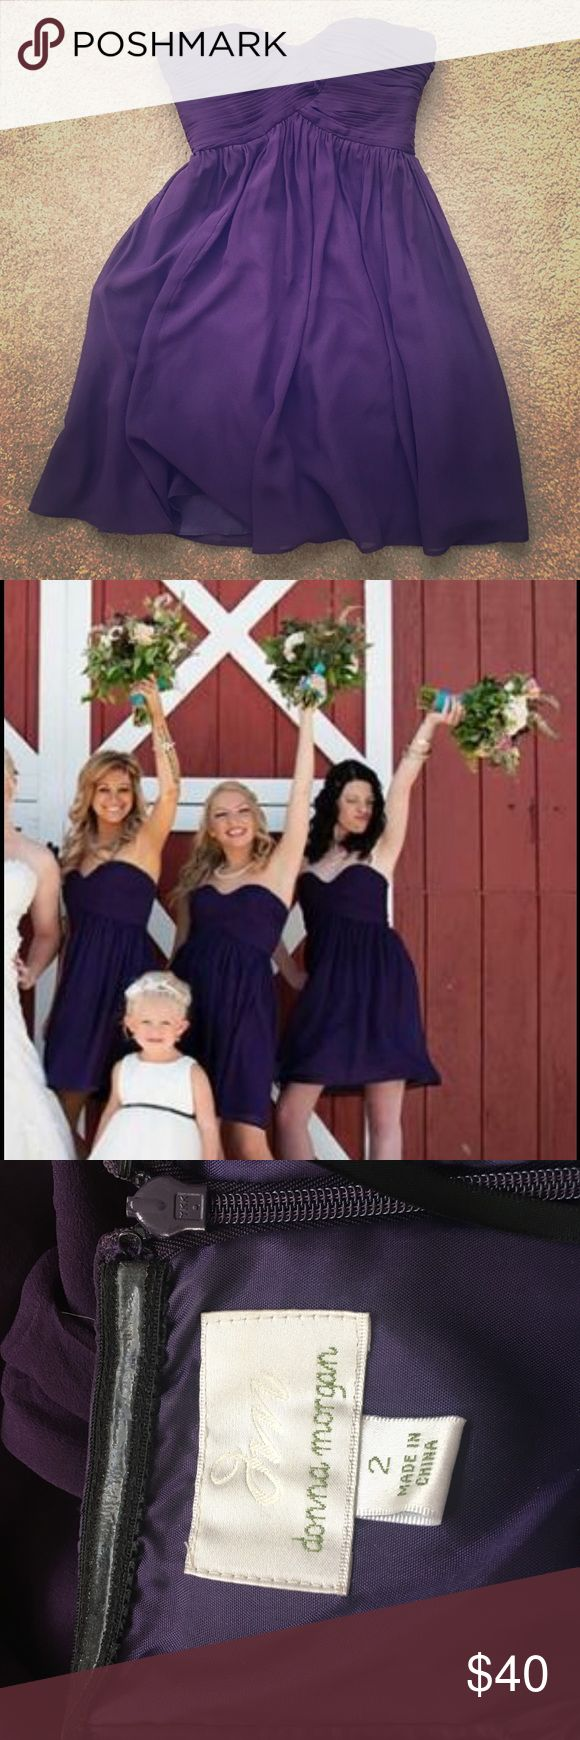 Donna Morgan bridesmaid / cocktail dress purple Gorgeous rich plum bridesmaid dress. Worn once, I have the cowboy boots too if interested Donna Morgan Dresses Wedding